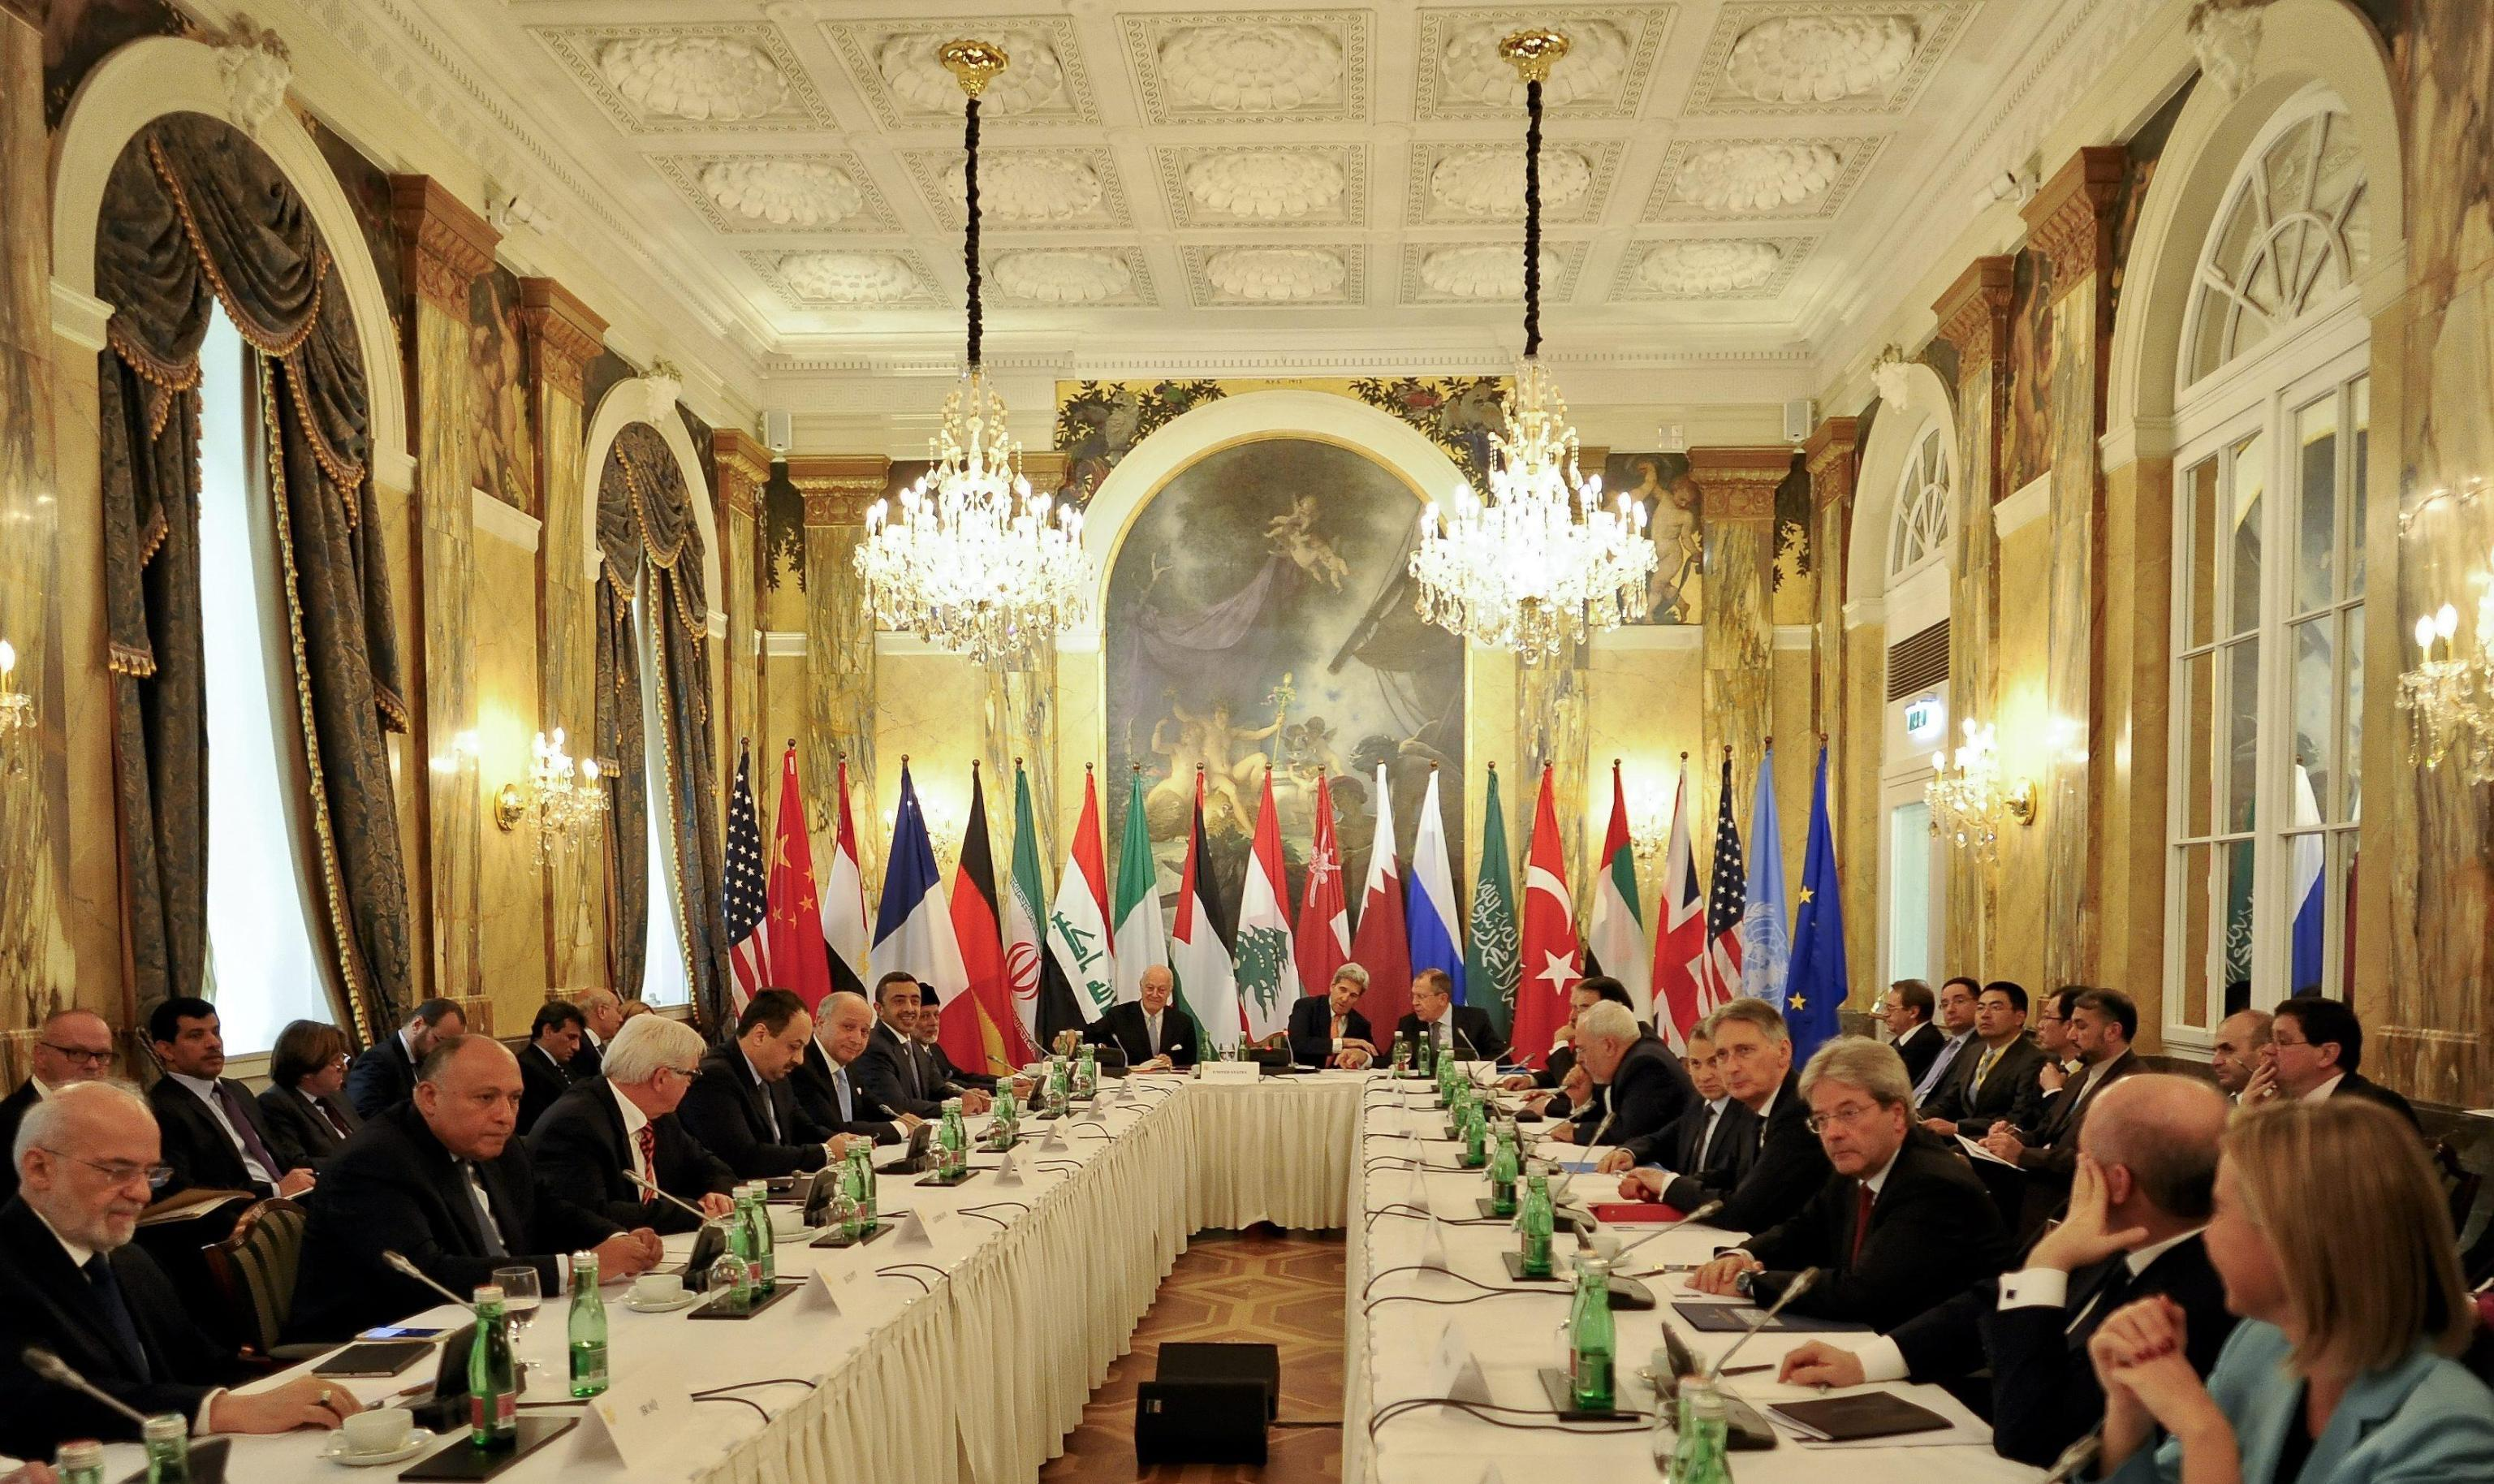 International conference on Syria in Vienna - US Secretary of State John Kerry (C) and Russian Foreign Minister Sergei Lavrov (C-R) head an international conference on Syria at the Hotel Imperial in Vienna